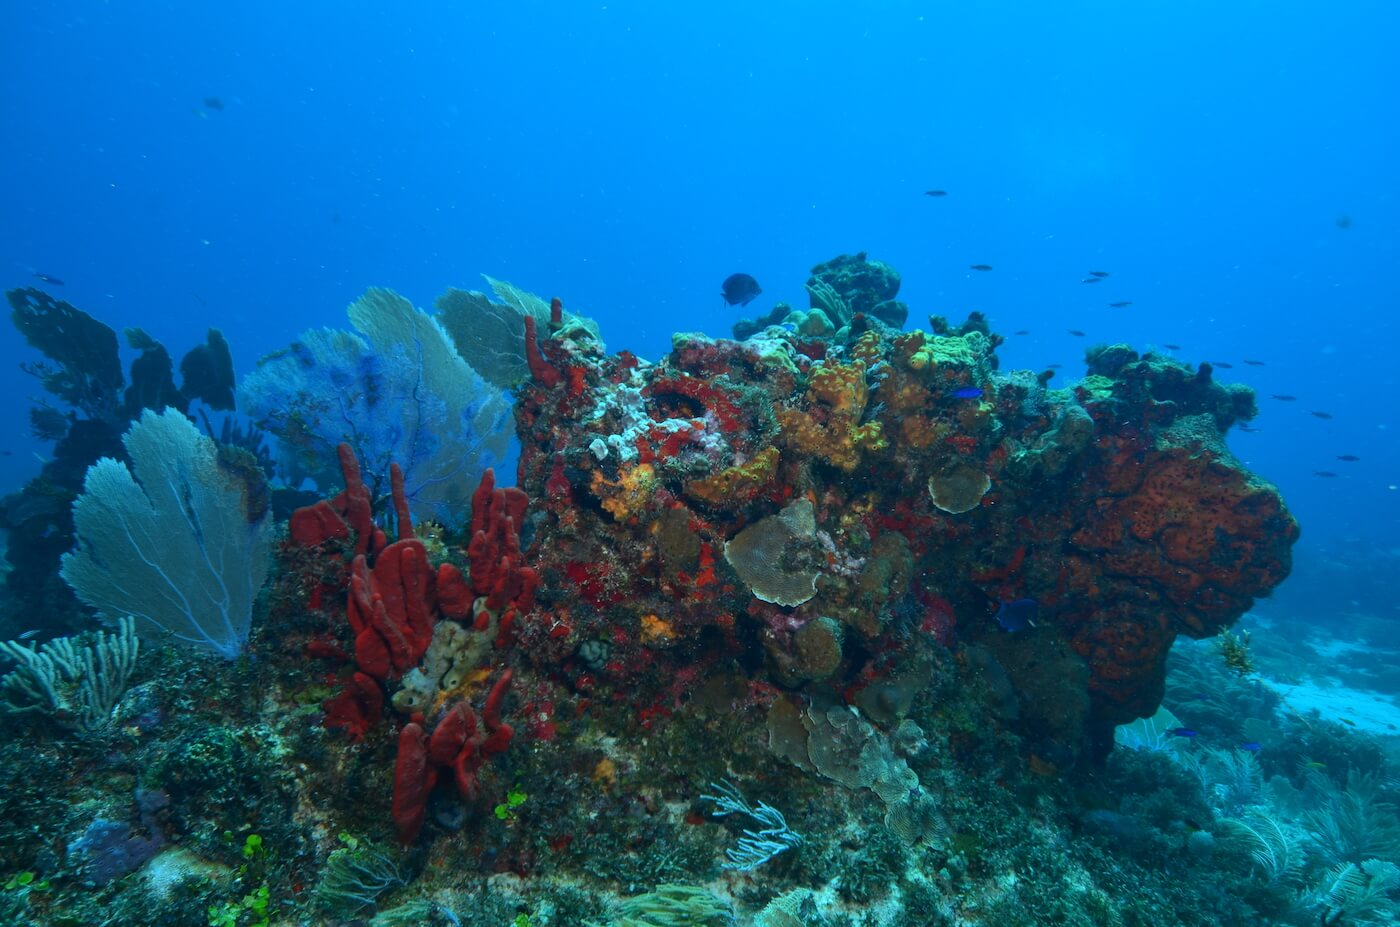 Coral-Reef-Cancun-Dive-Center-Caribbean-Connections-17